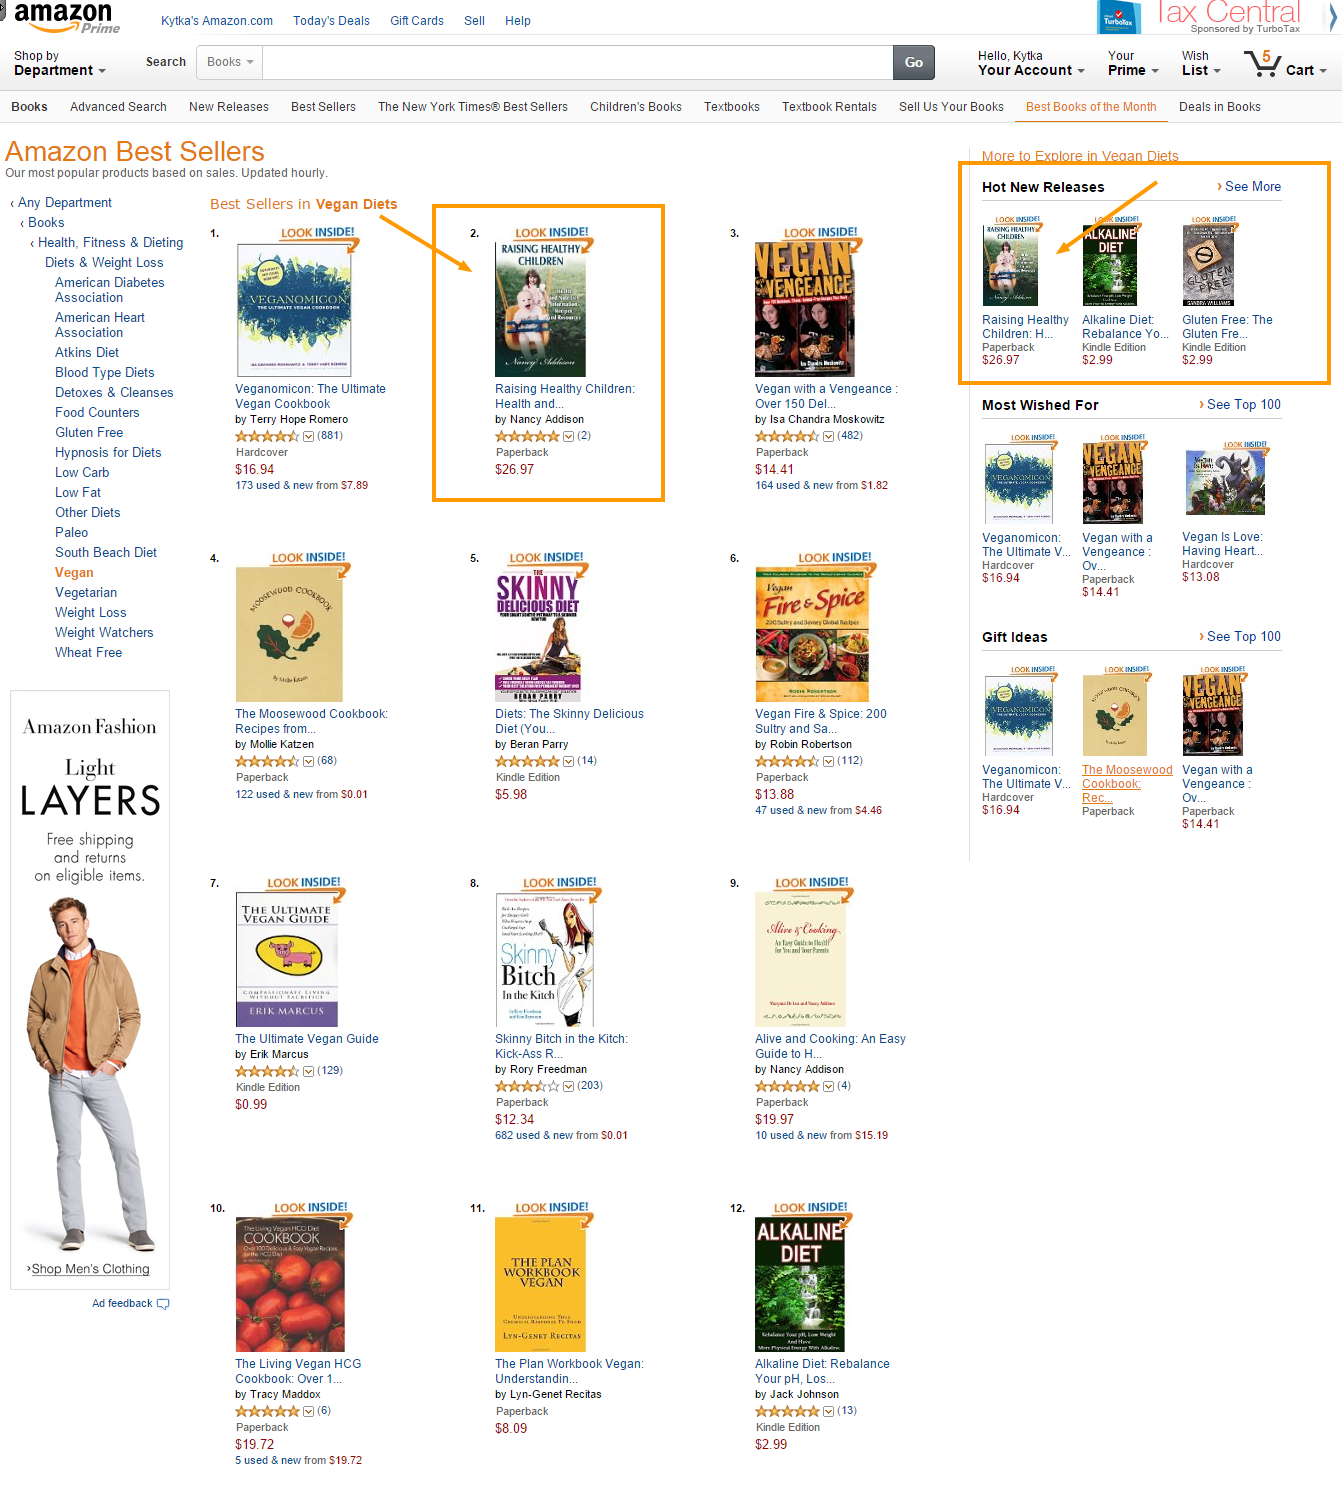 Bestsellers amazon screen shot - copy